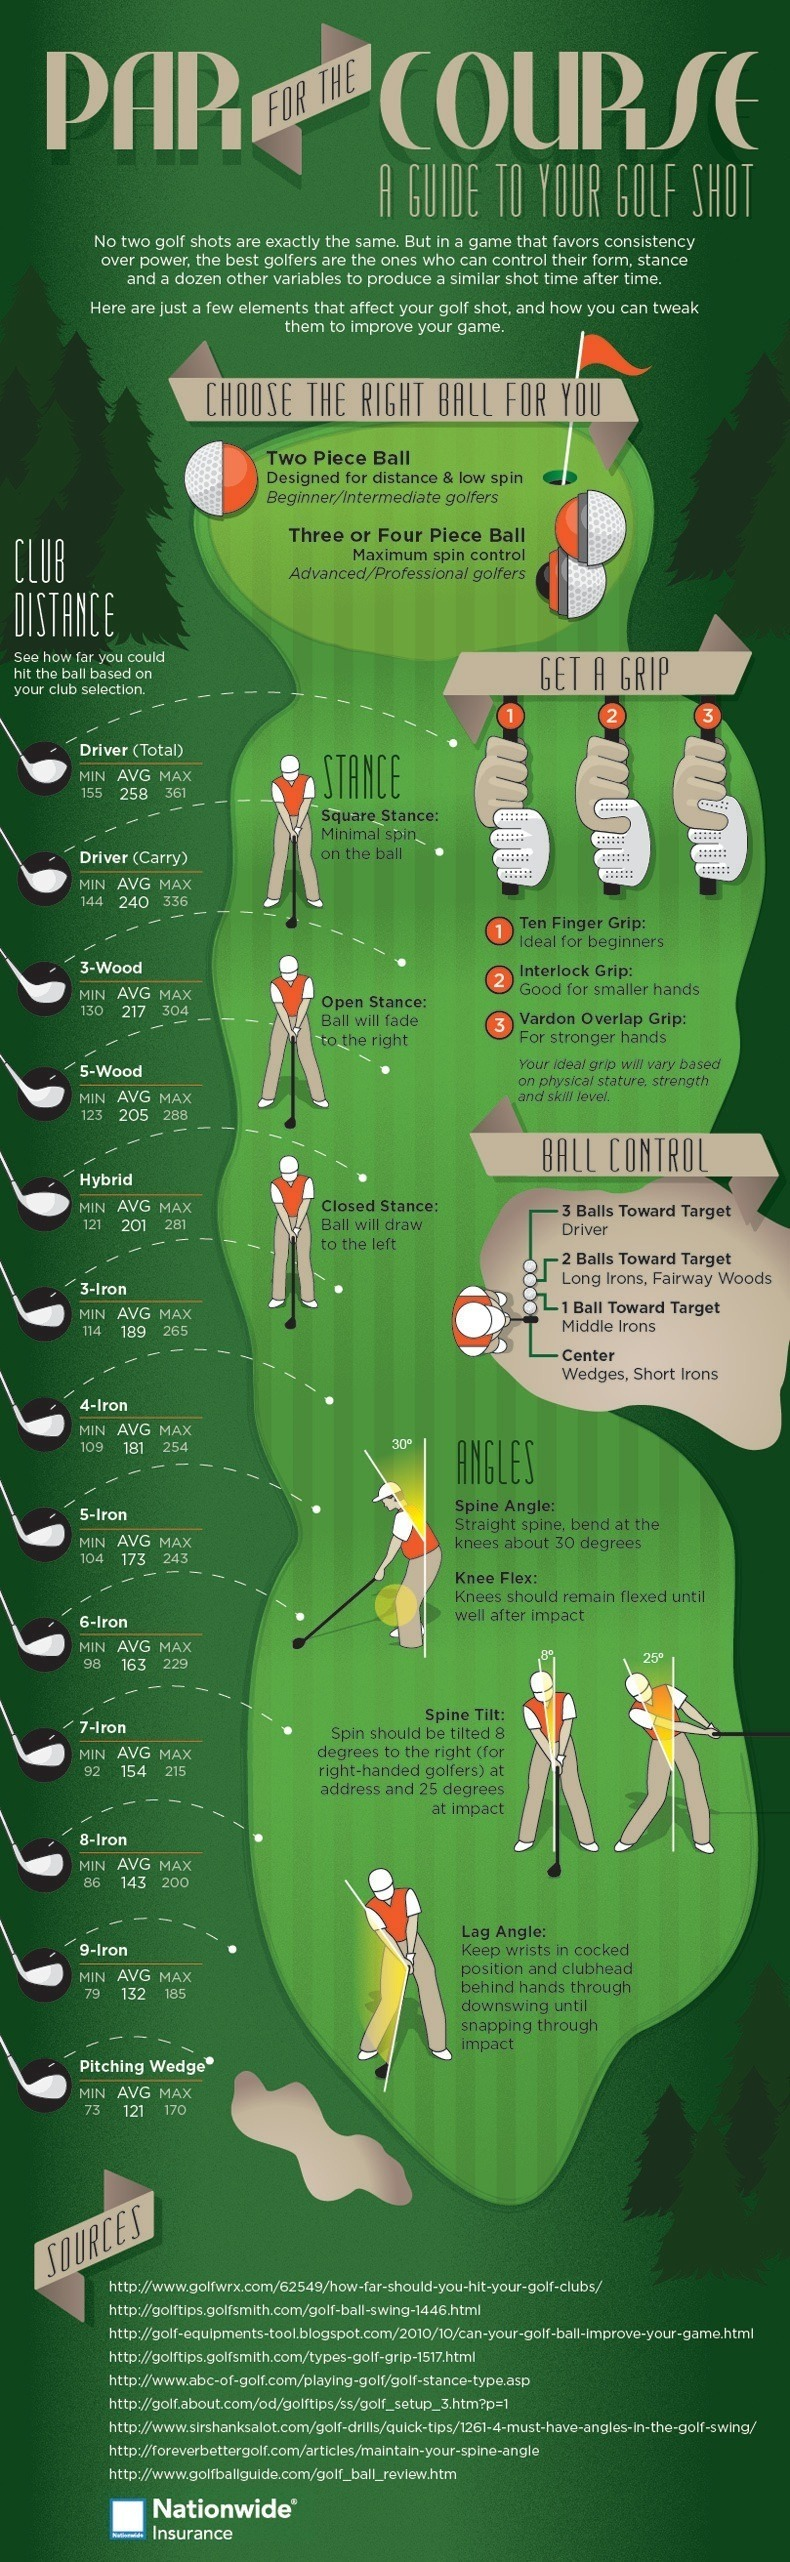 golf club distances chart